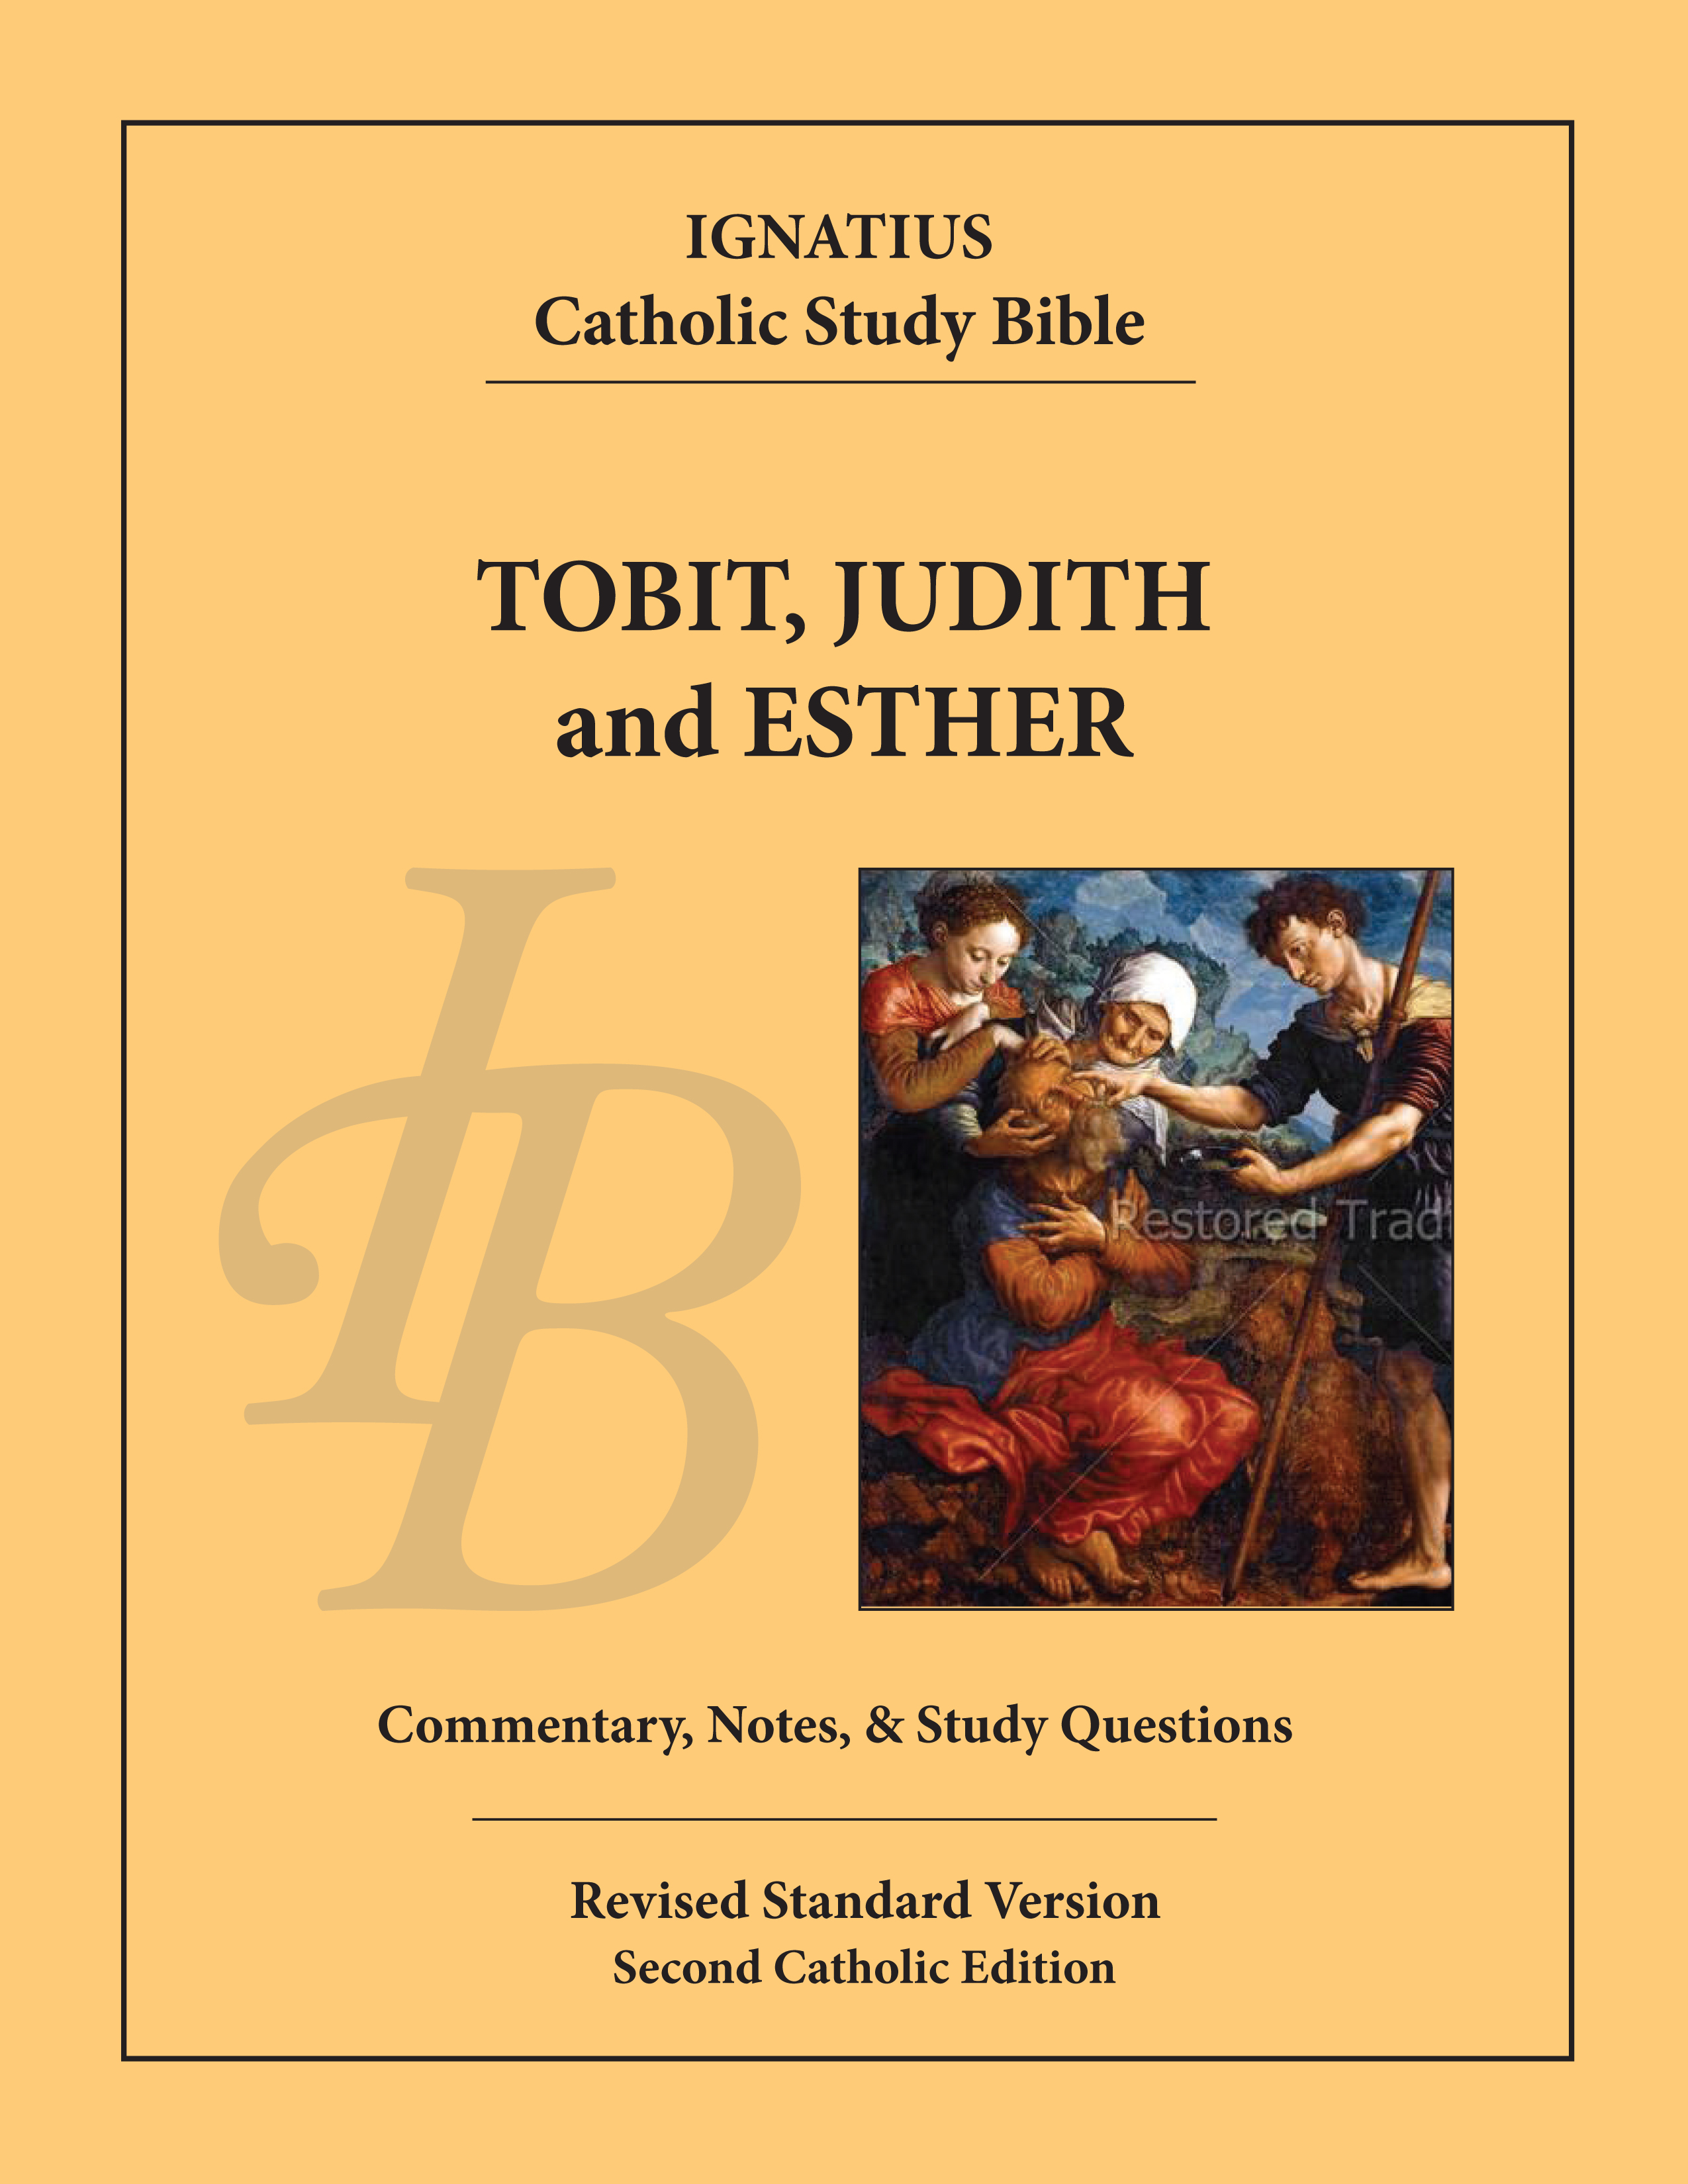 Tobit, Judith and Esther